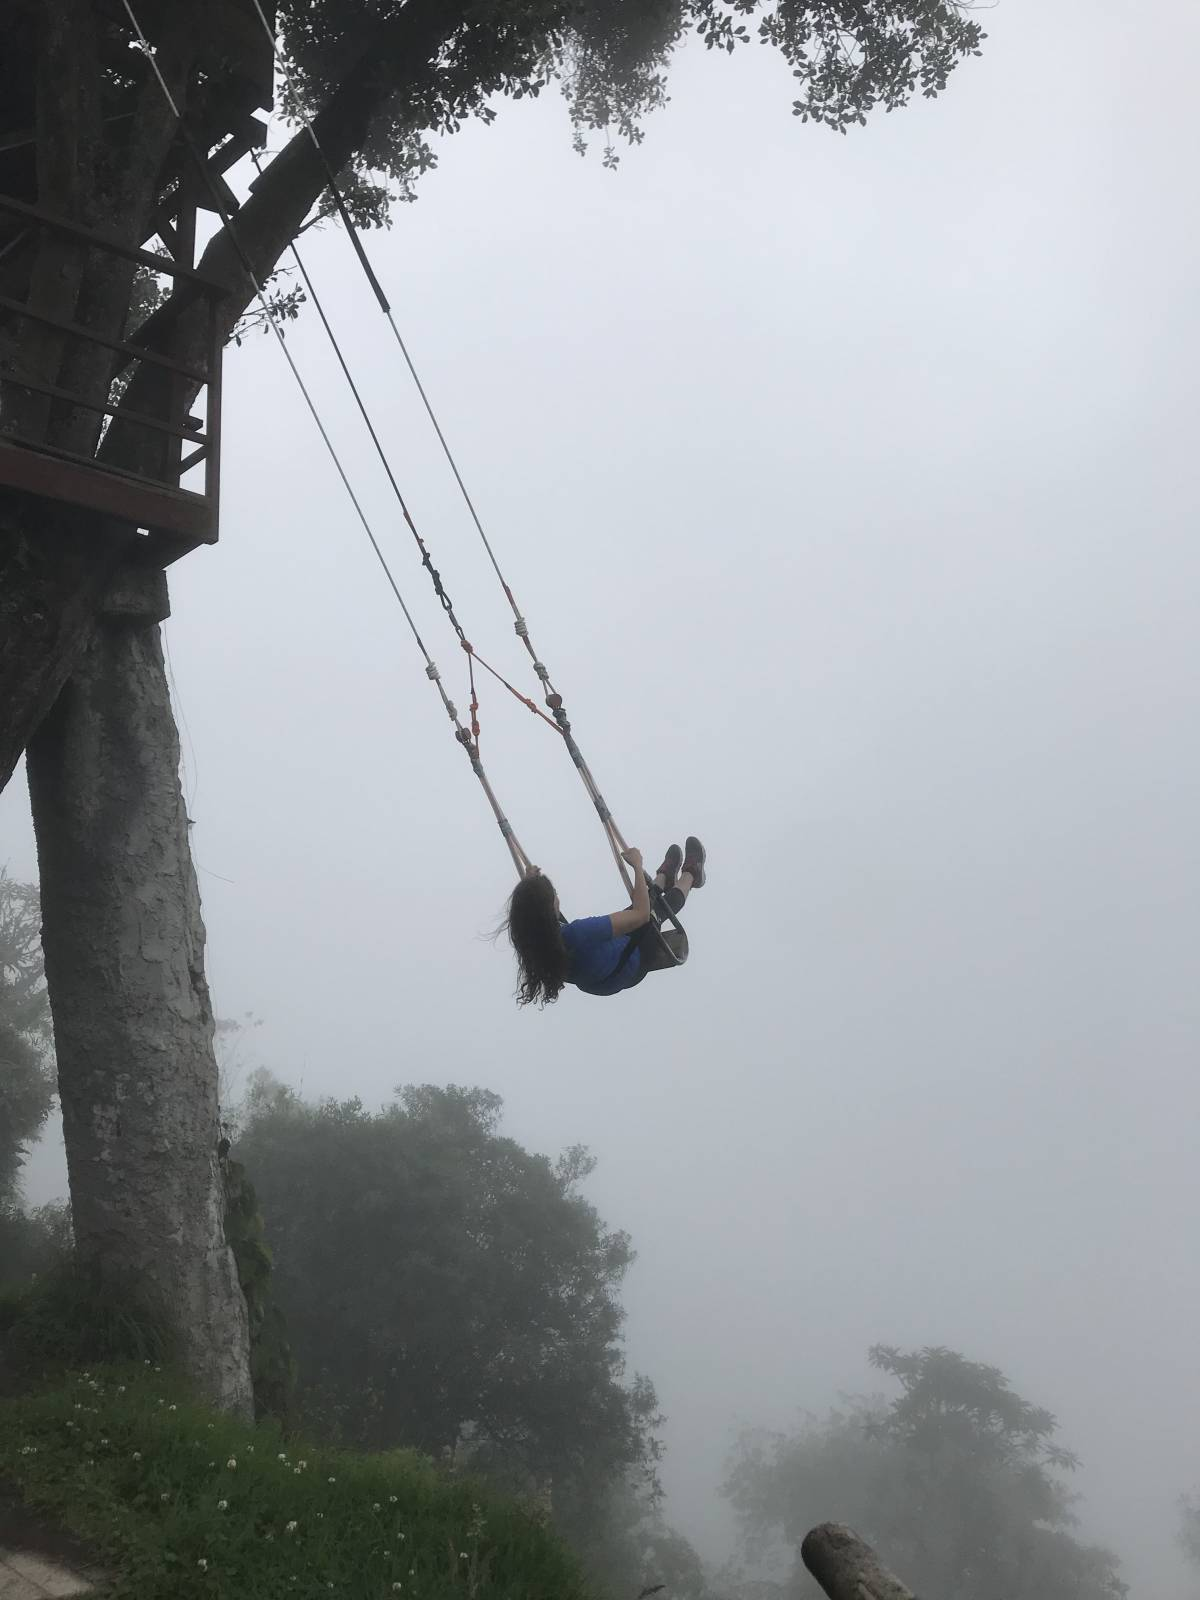 How to Get to The Swing at the End of the World in Banos, Ecuador